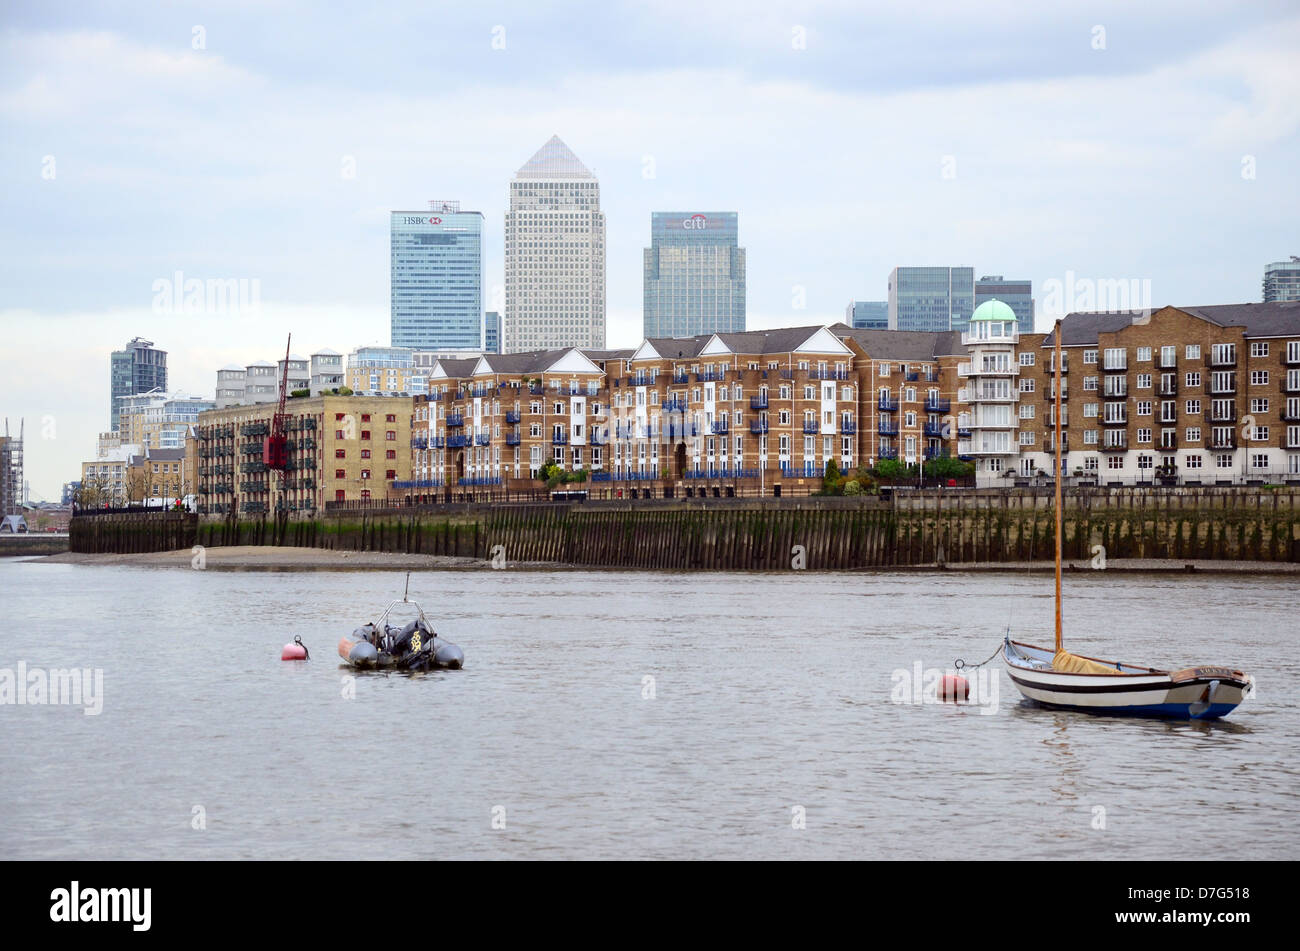 View towards Canary Wharf and London Docklands from Shadwell, London Stock Photo